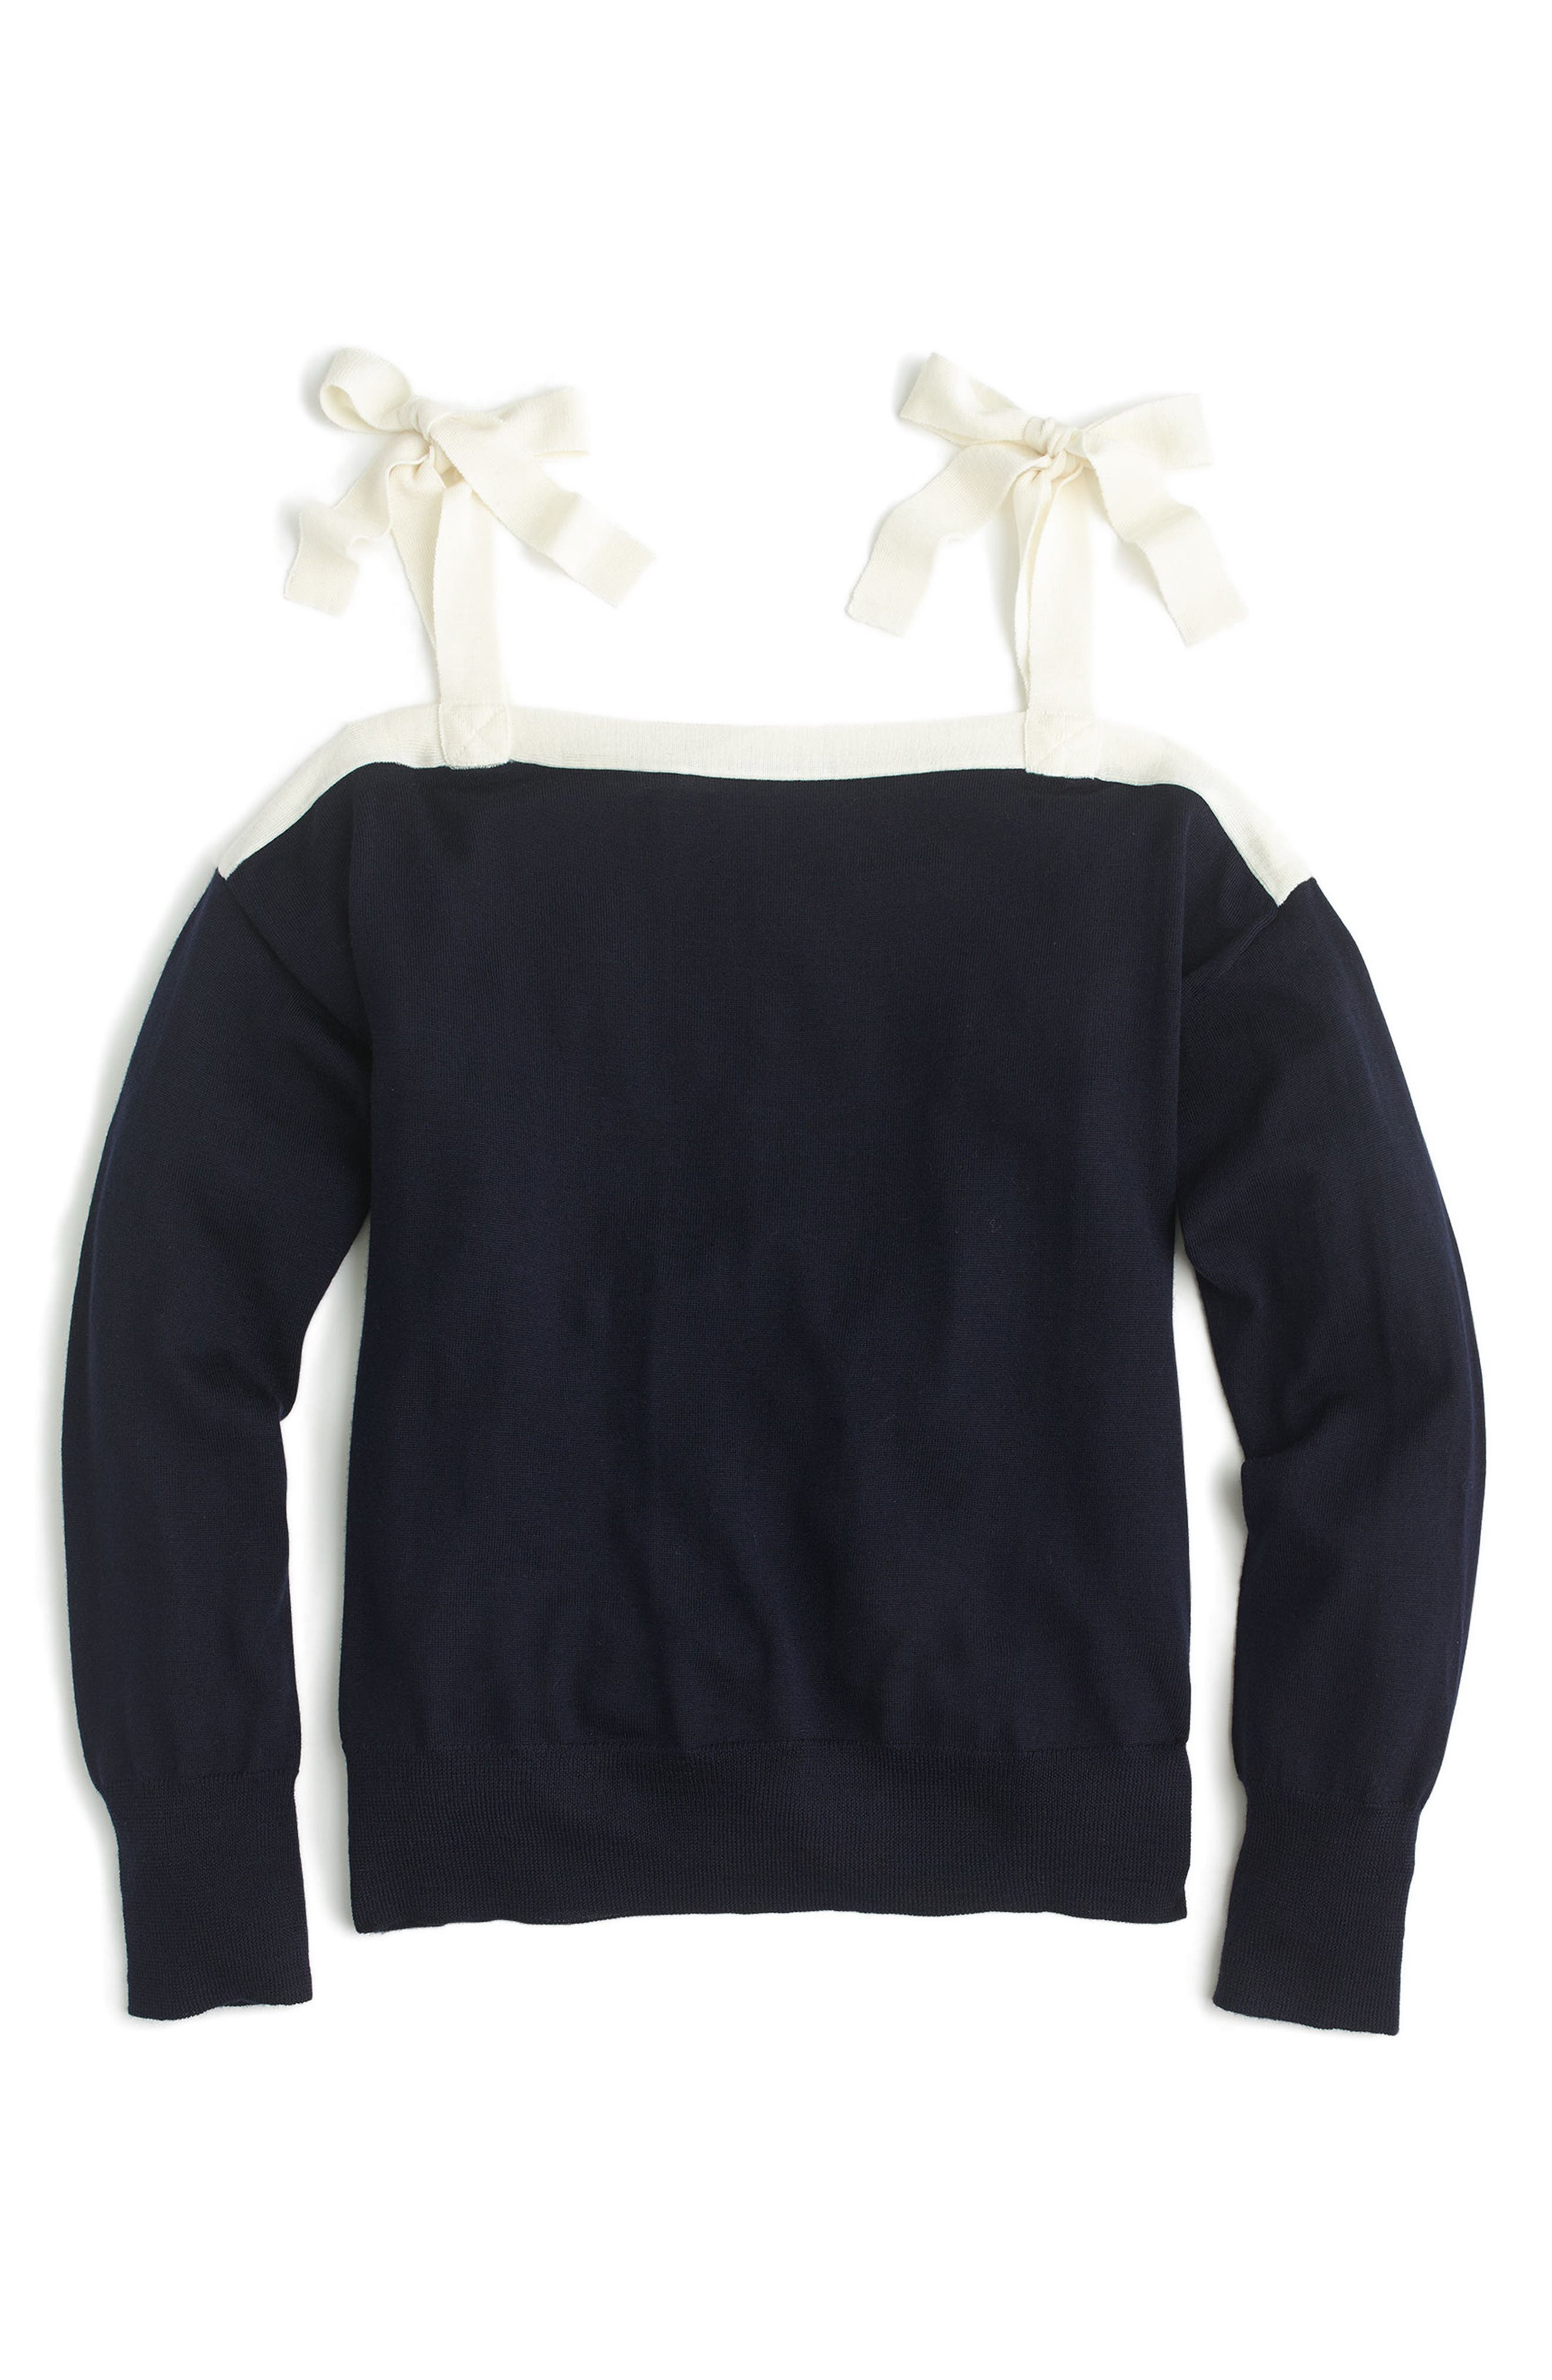 Cold Shoulder Sweaters & Sweatshirts, Cowl Necks, Cable Knits ...